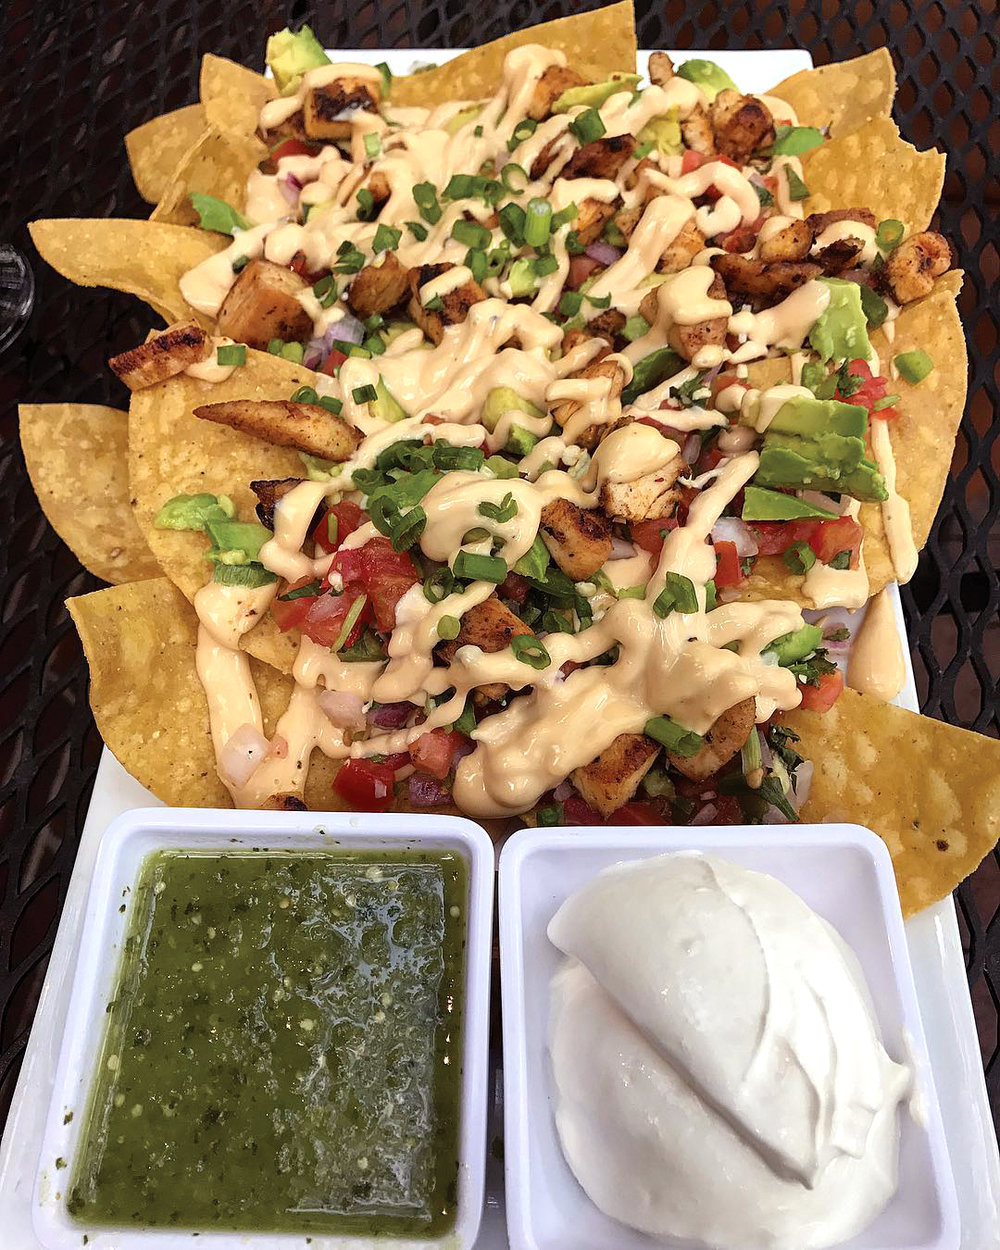 CLOUDS BREWING  Chicken Nachos with beer cheese, pico de gallo, and fresh avocado + sides of salsa verde and sour cream